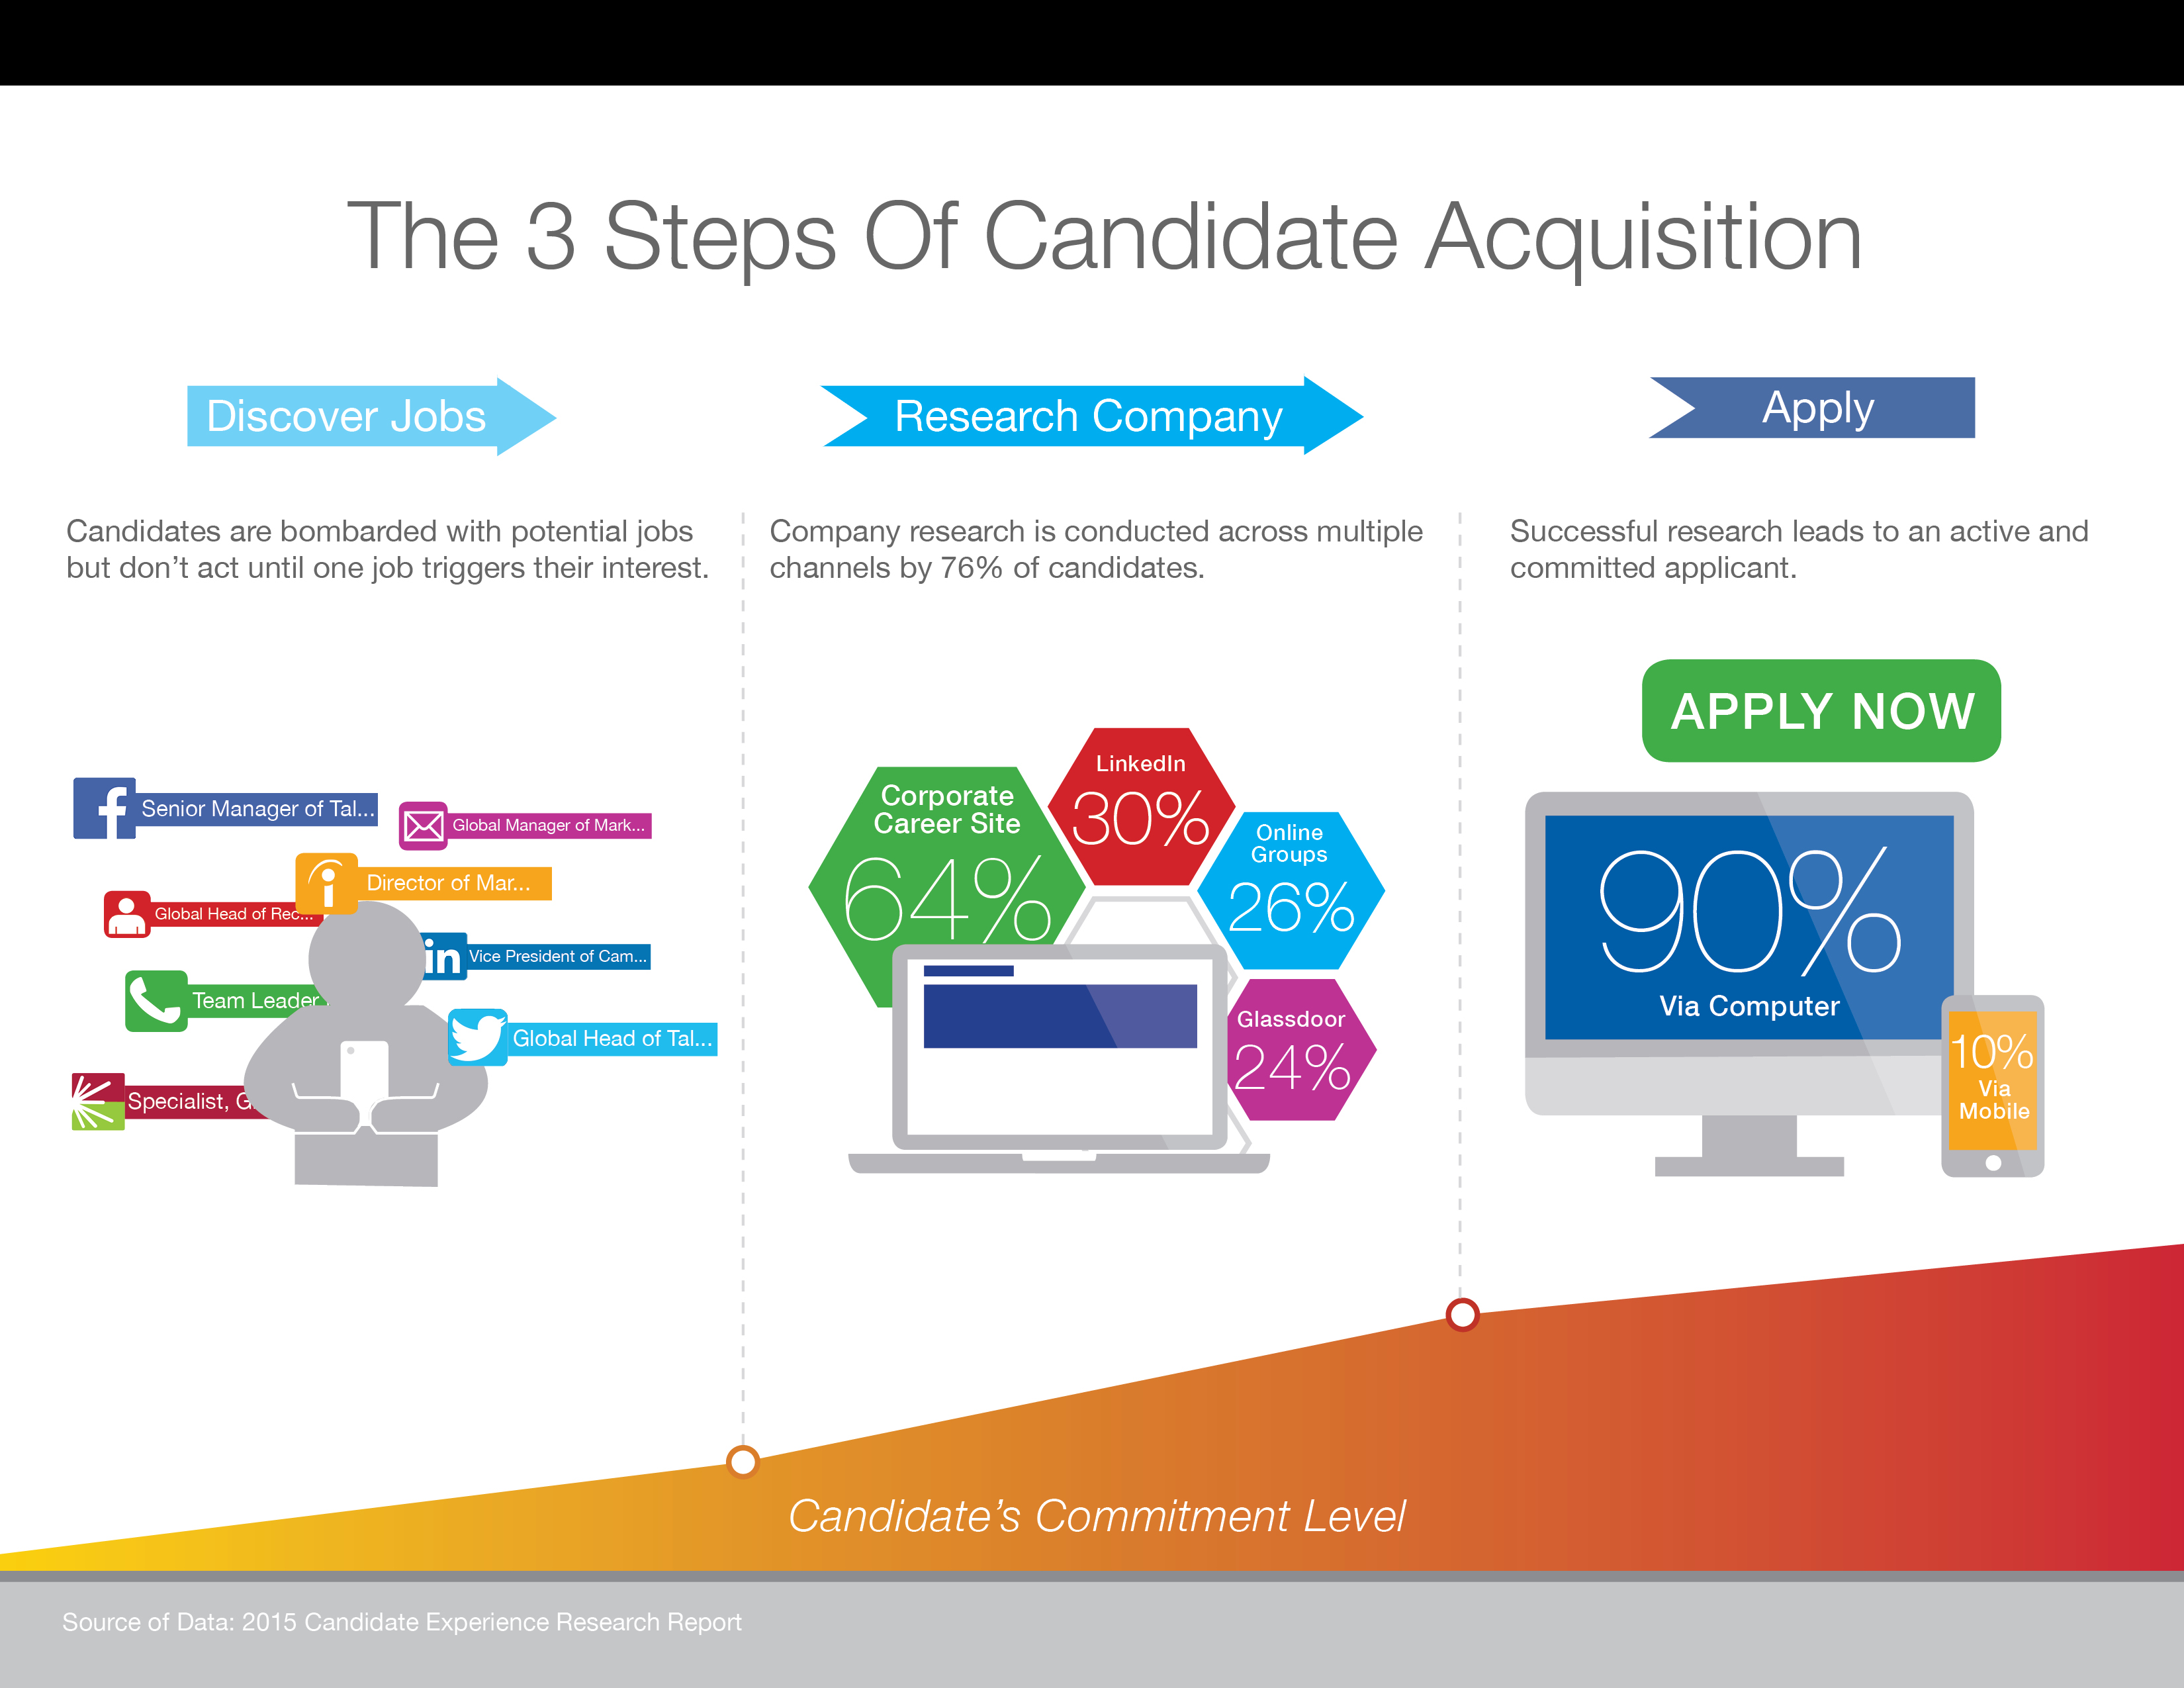 maury hanigan sparc the 3 steps of candidate acquisition